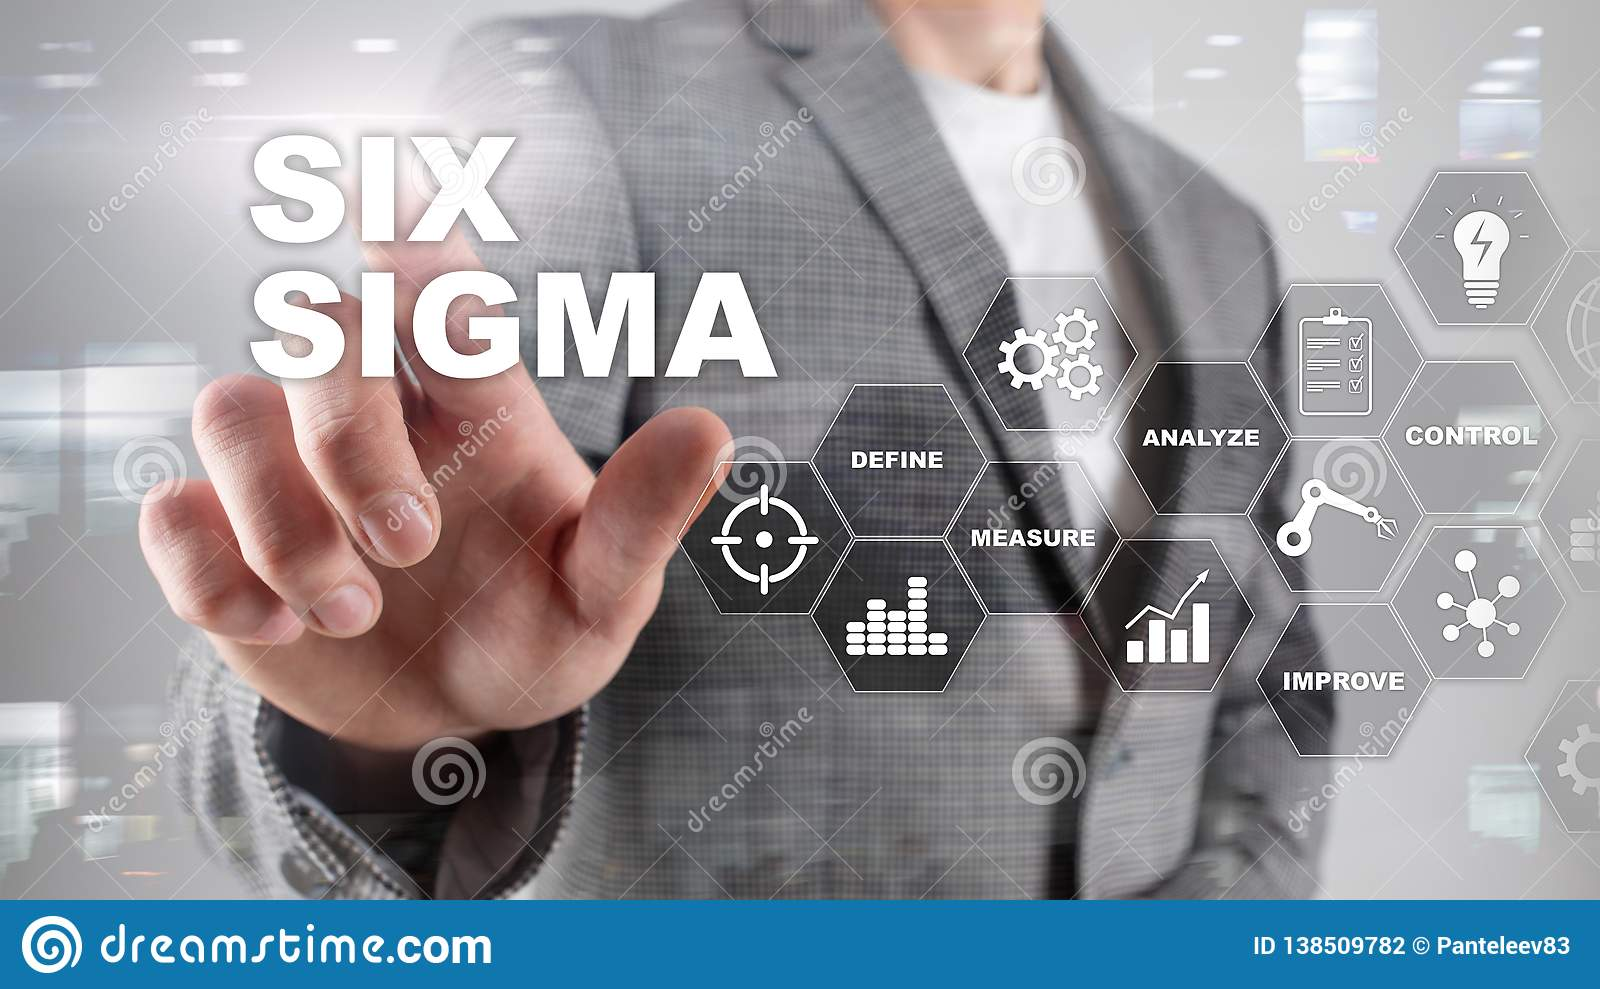 Six Sigma, manufacturing, quality control and industrial process improving concept. Business, internet and tehcnology.